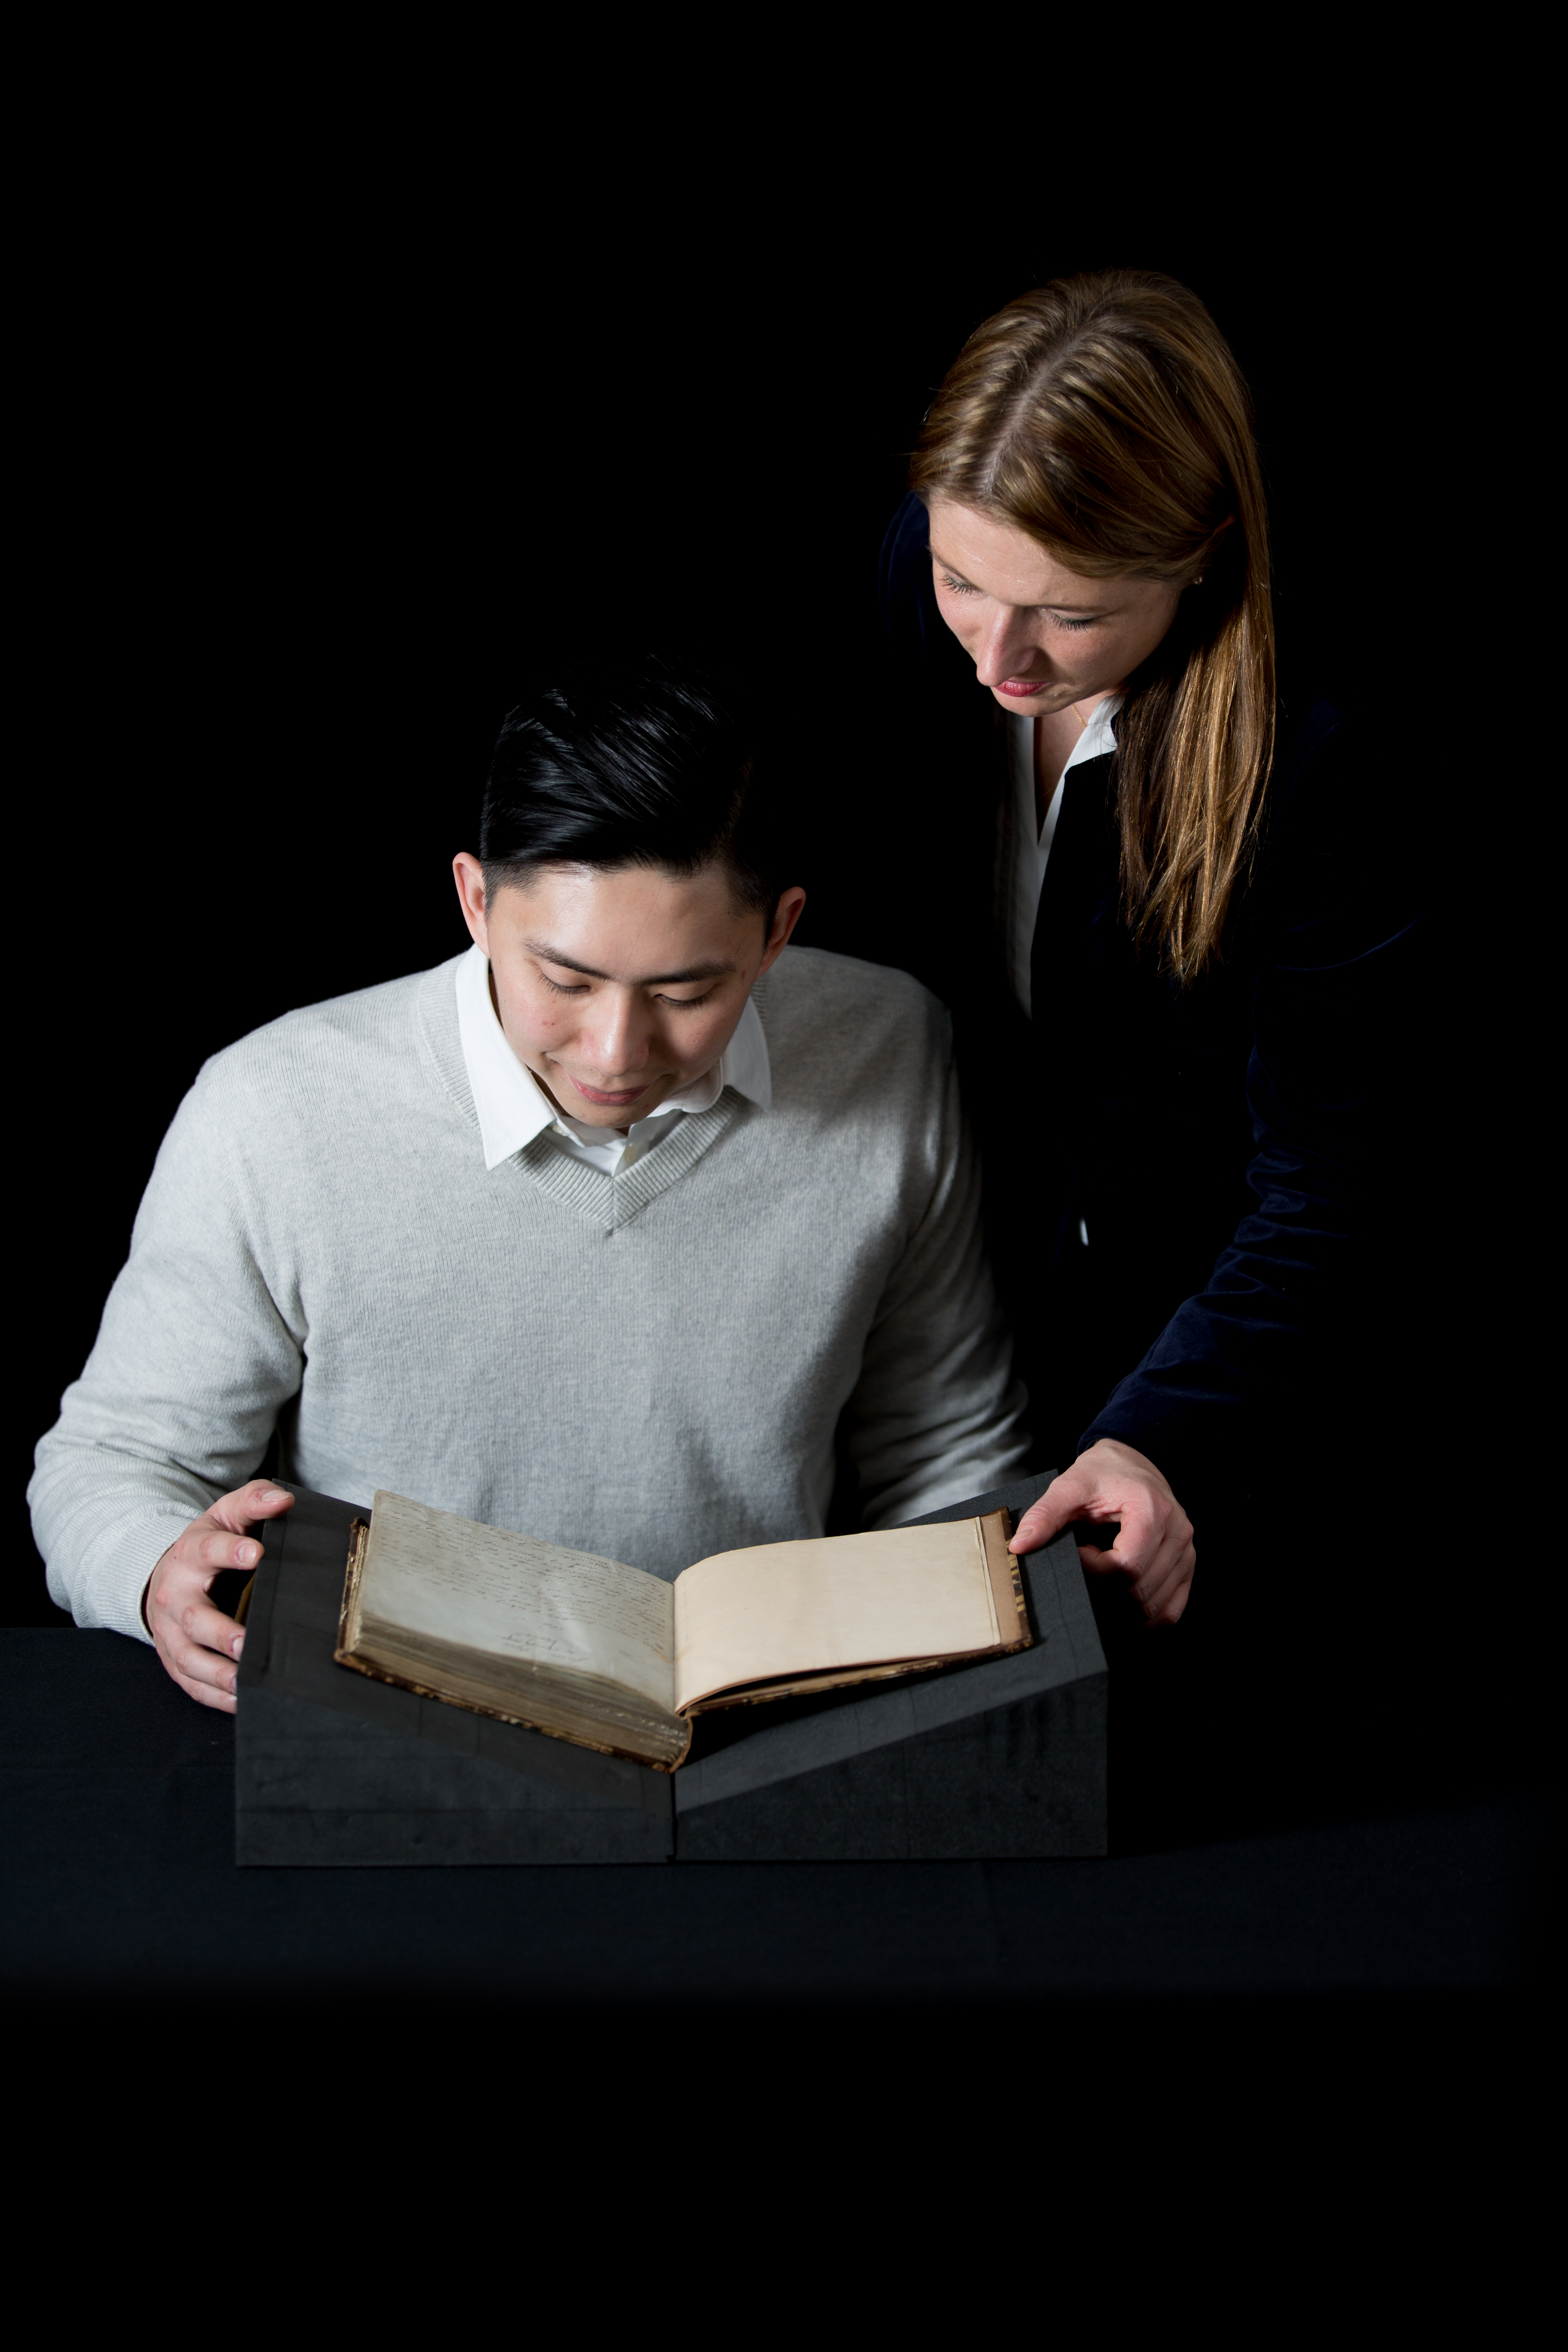 The British Library in China: connecting through culture and learning is a UK government funded project to share the British Library's most important literary manuscripts with Chinese audiences for the first time.